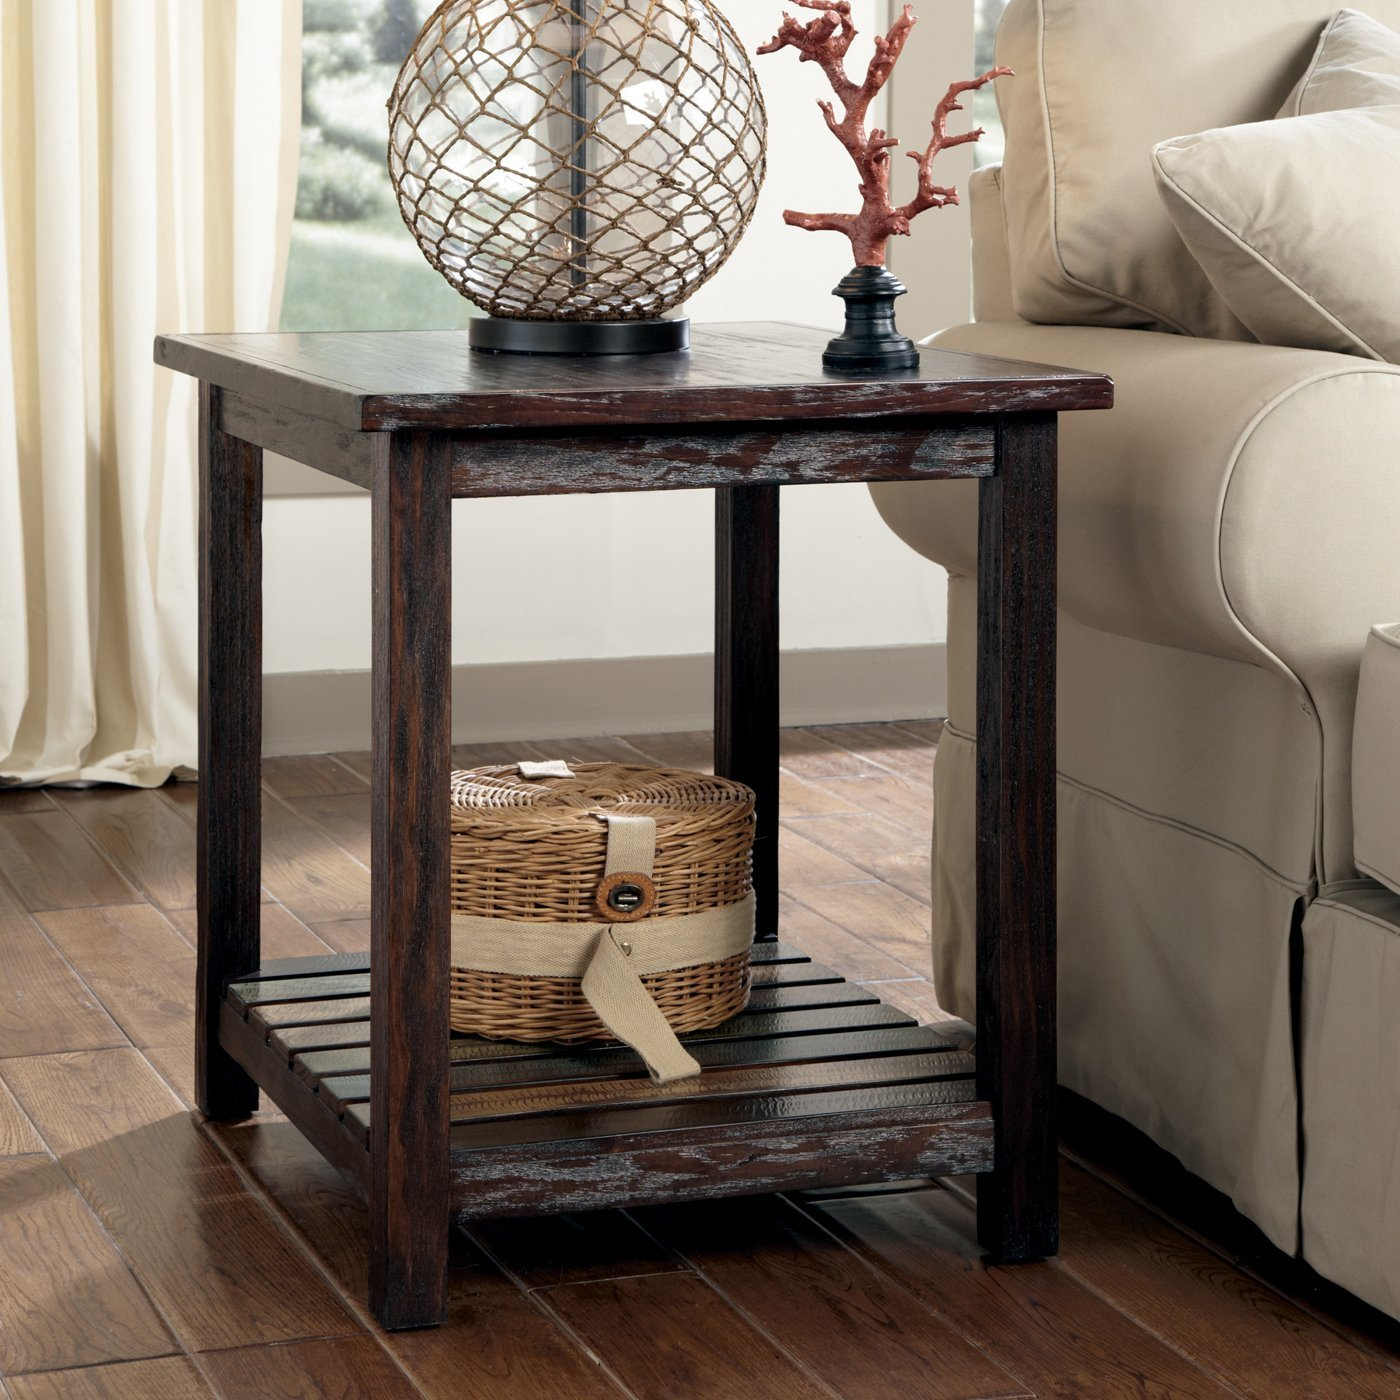 t580 Mestler chairside table